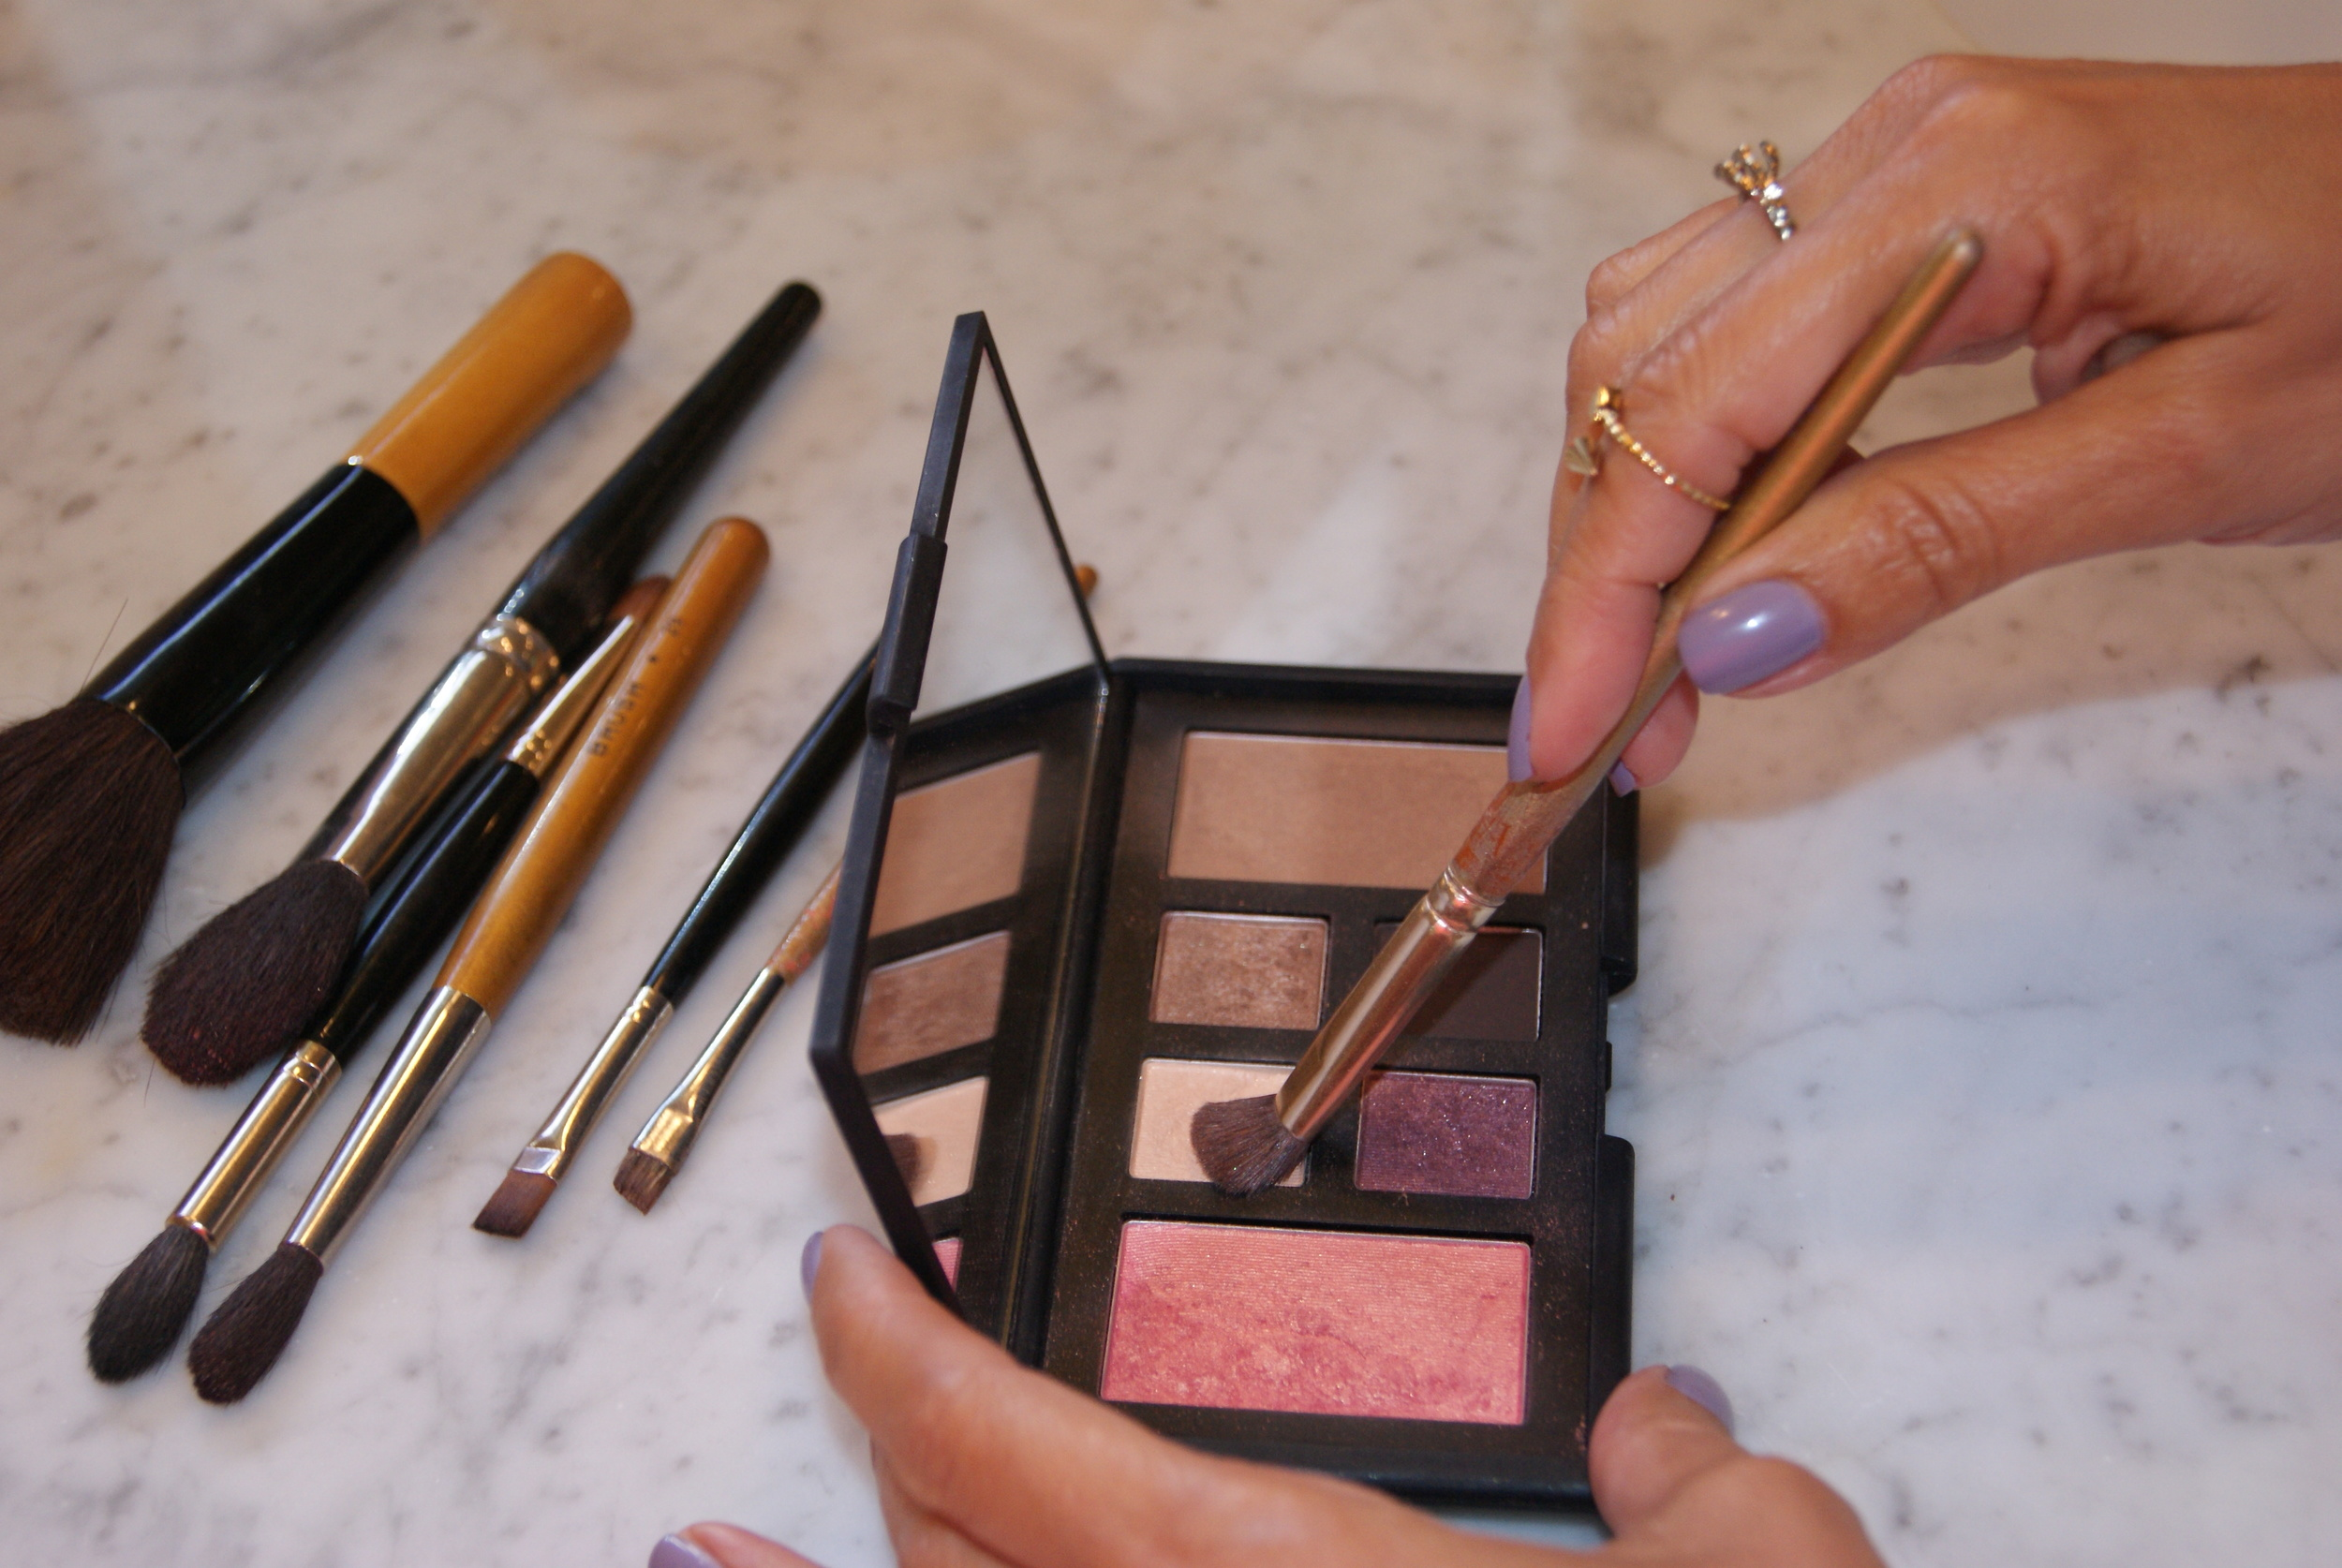 Step 2. Using a flat smaller brush, apply the sheer peach with gold pearl shade as a base and under the brow bone.